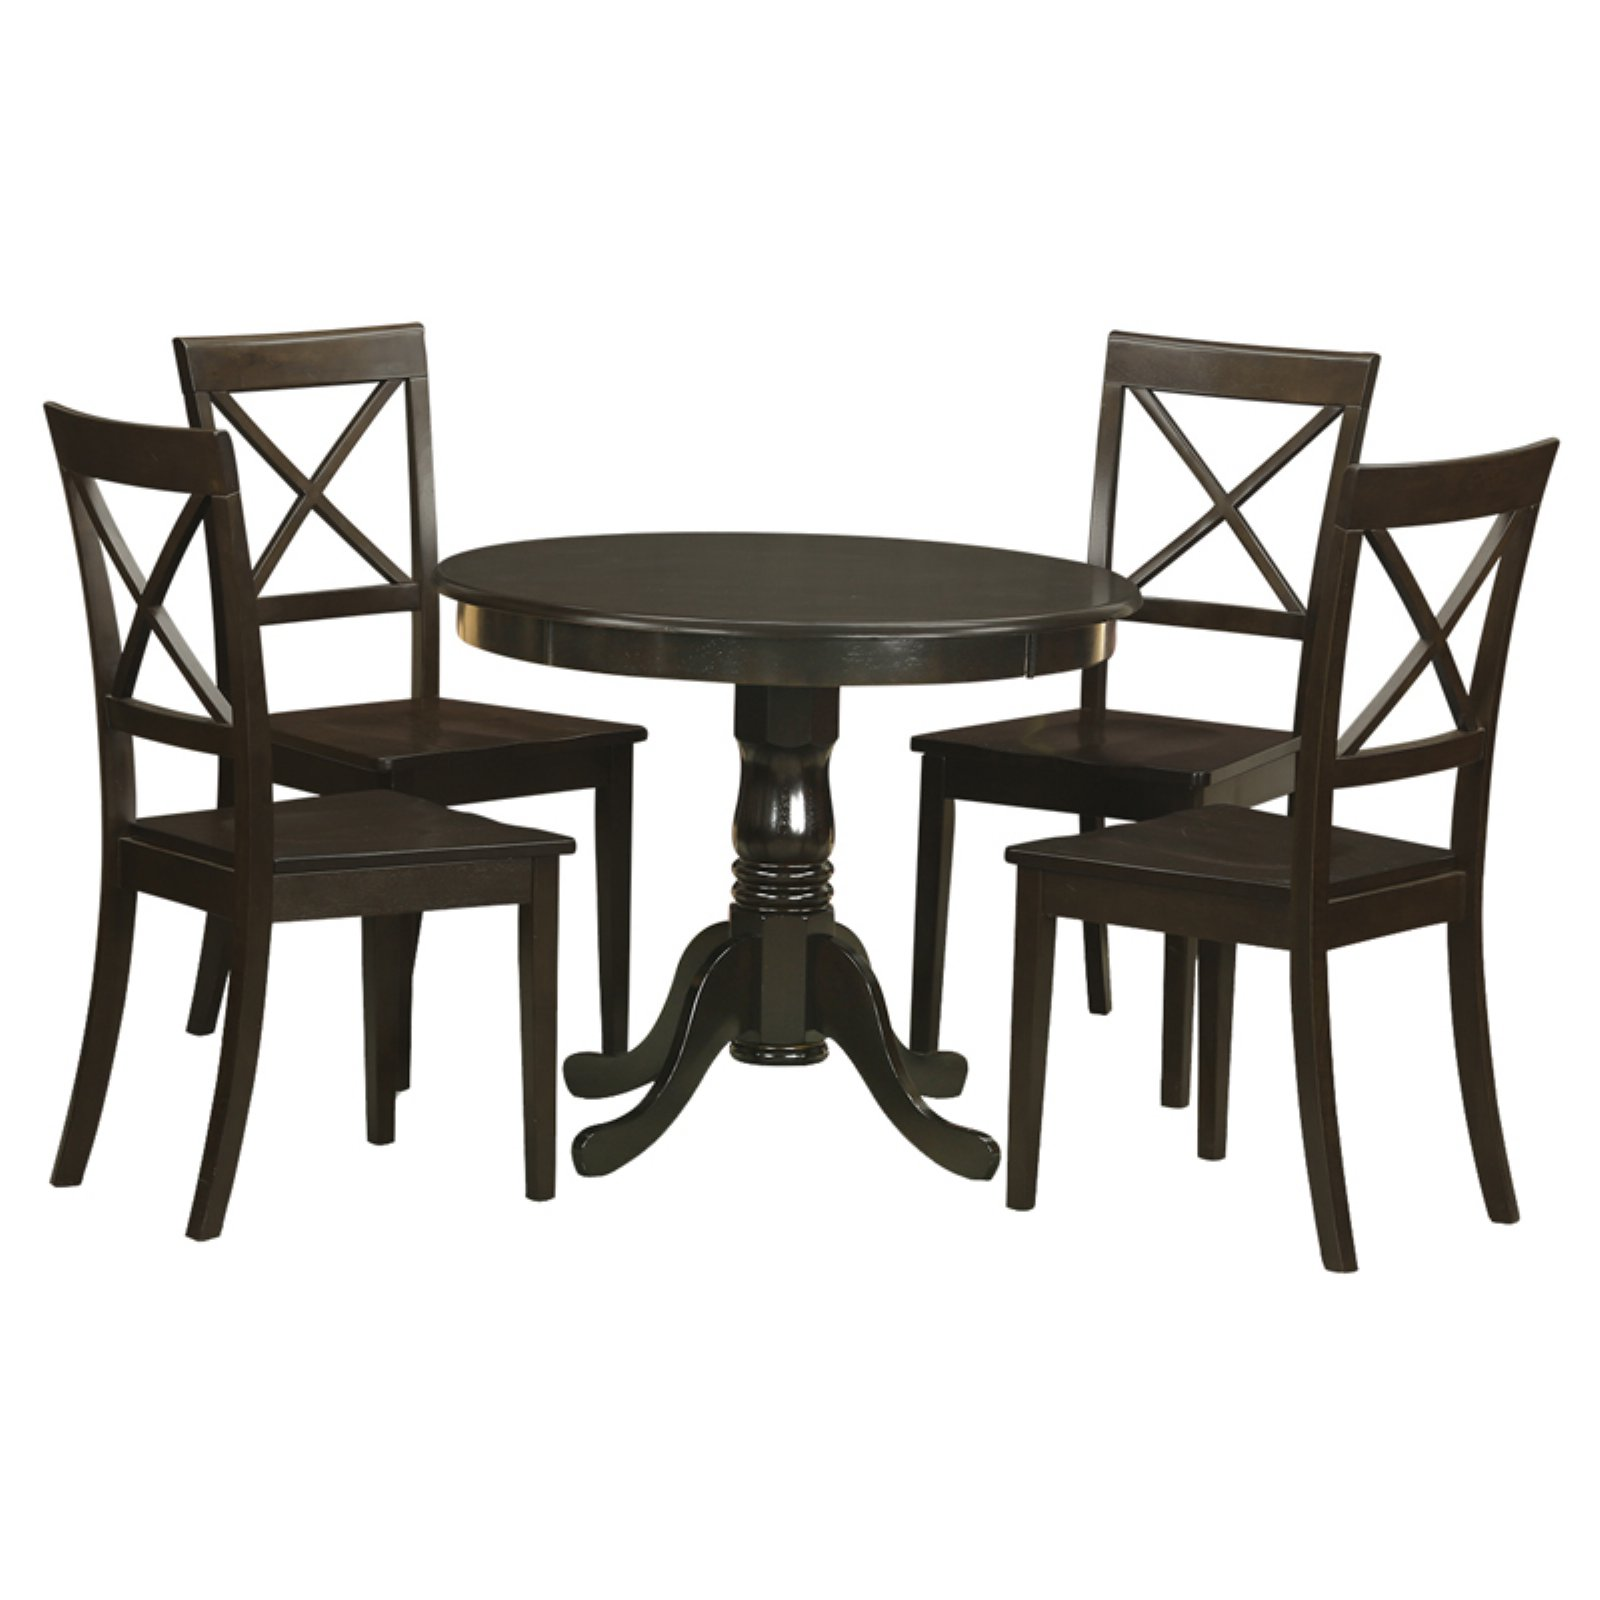 East West Furniture Antique 5 Piece Pedestal Round Dining Table Set with Boston Wooden Seat Chairs